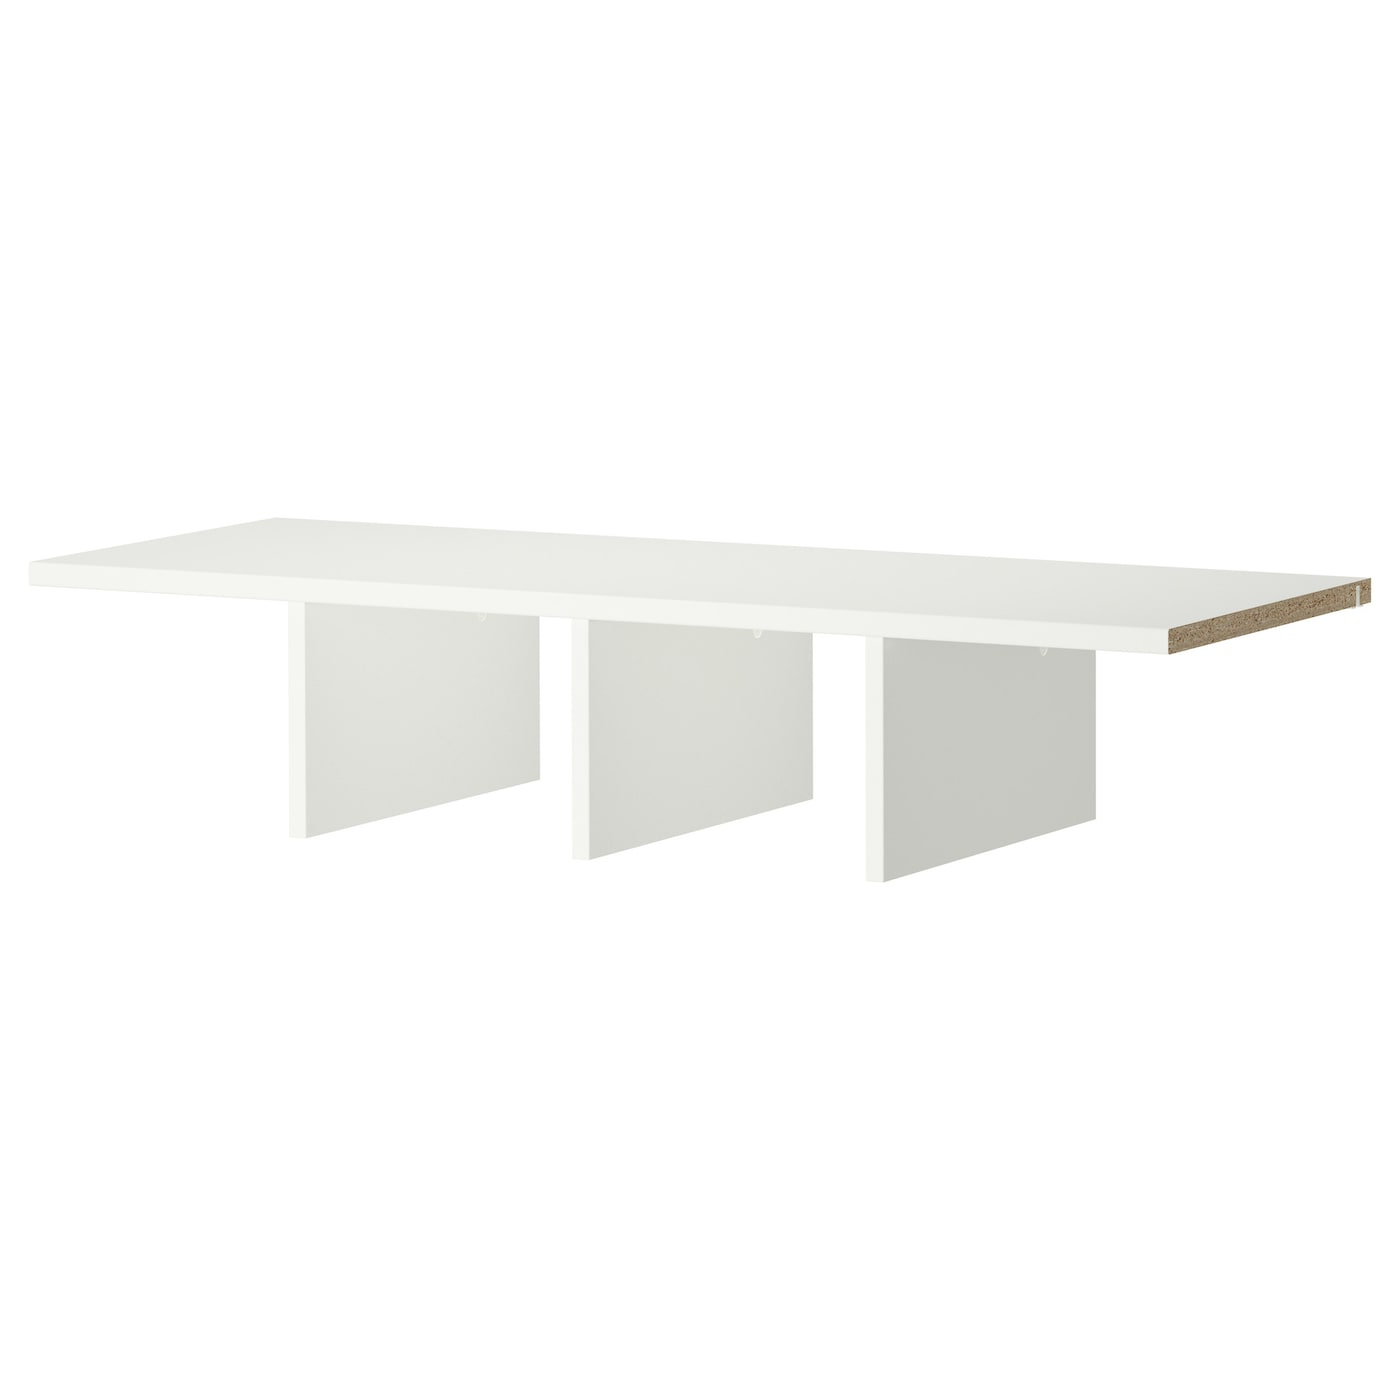 IKEA KOMPLEMENT shelf insert 10 year guarantee. Read about the terms in the guarantee brochure.